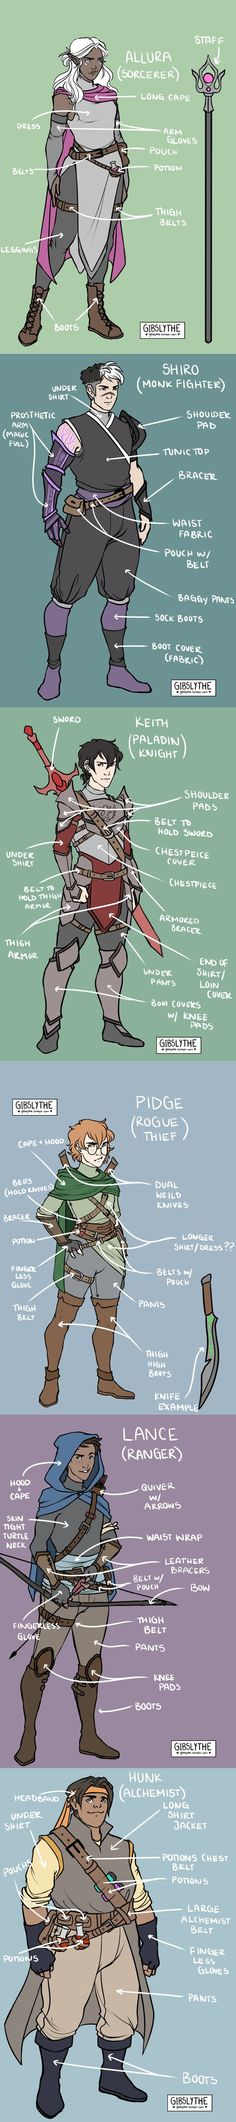 Voltron paladins as dnd characters?